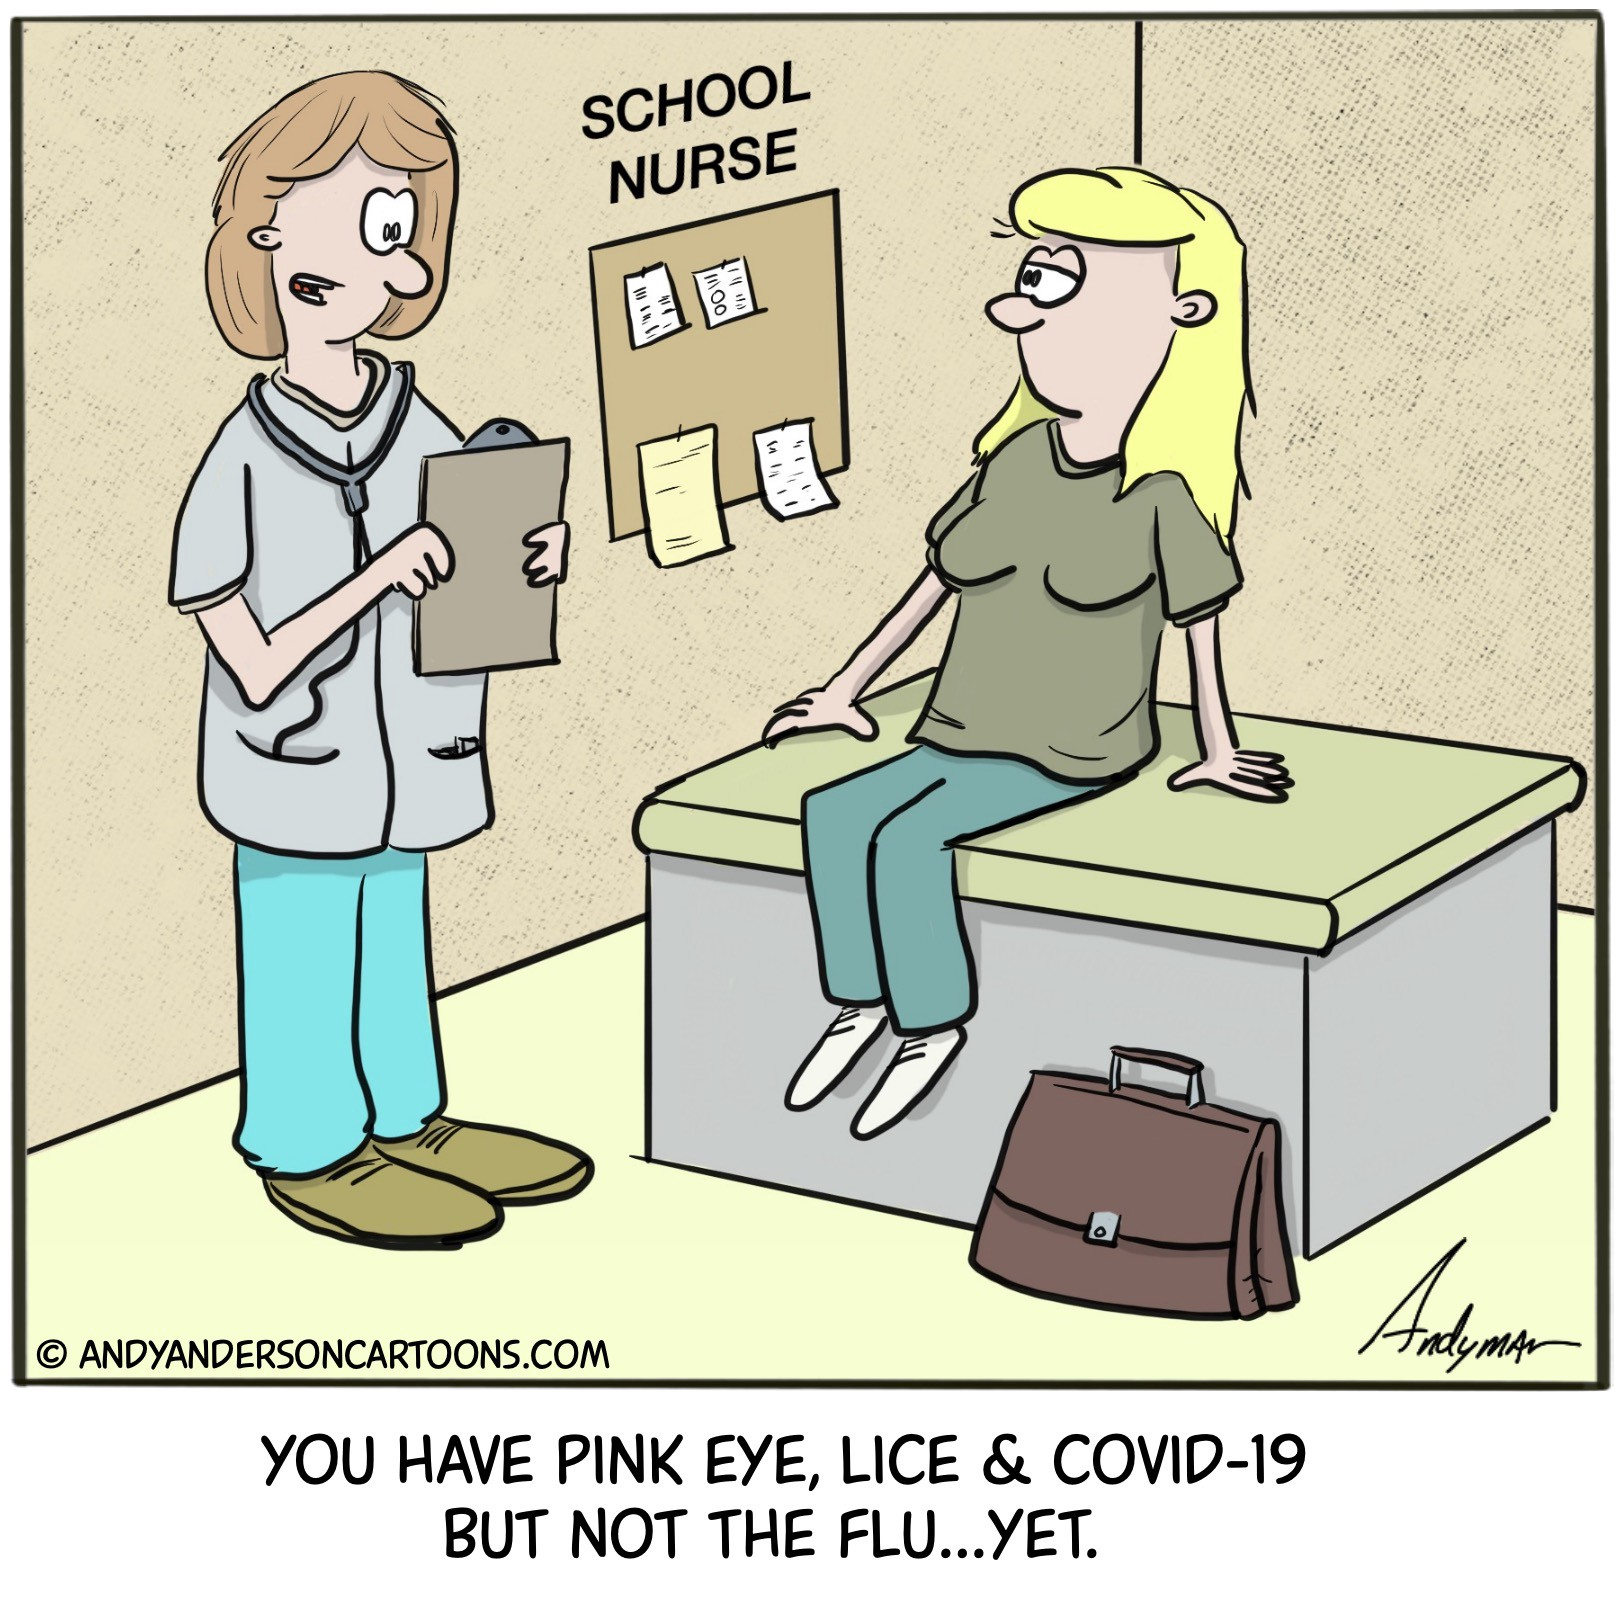 Cartoon about teachers returning to school and getting lice, pink eye and COVID-19 but not the flu—yet.